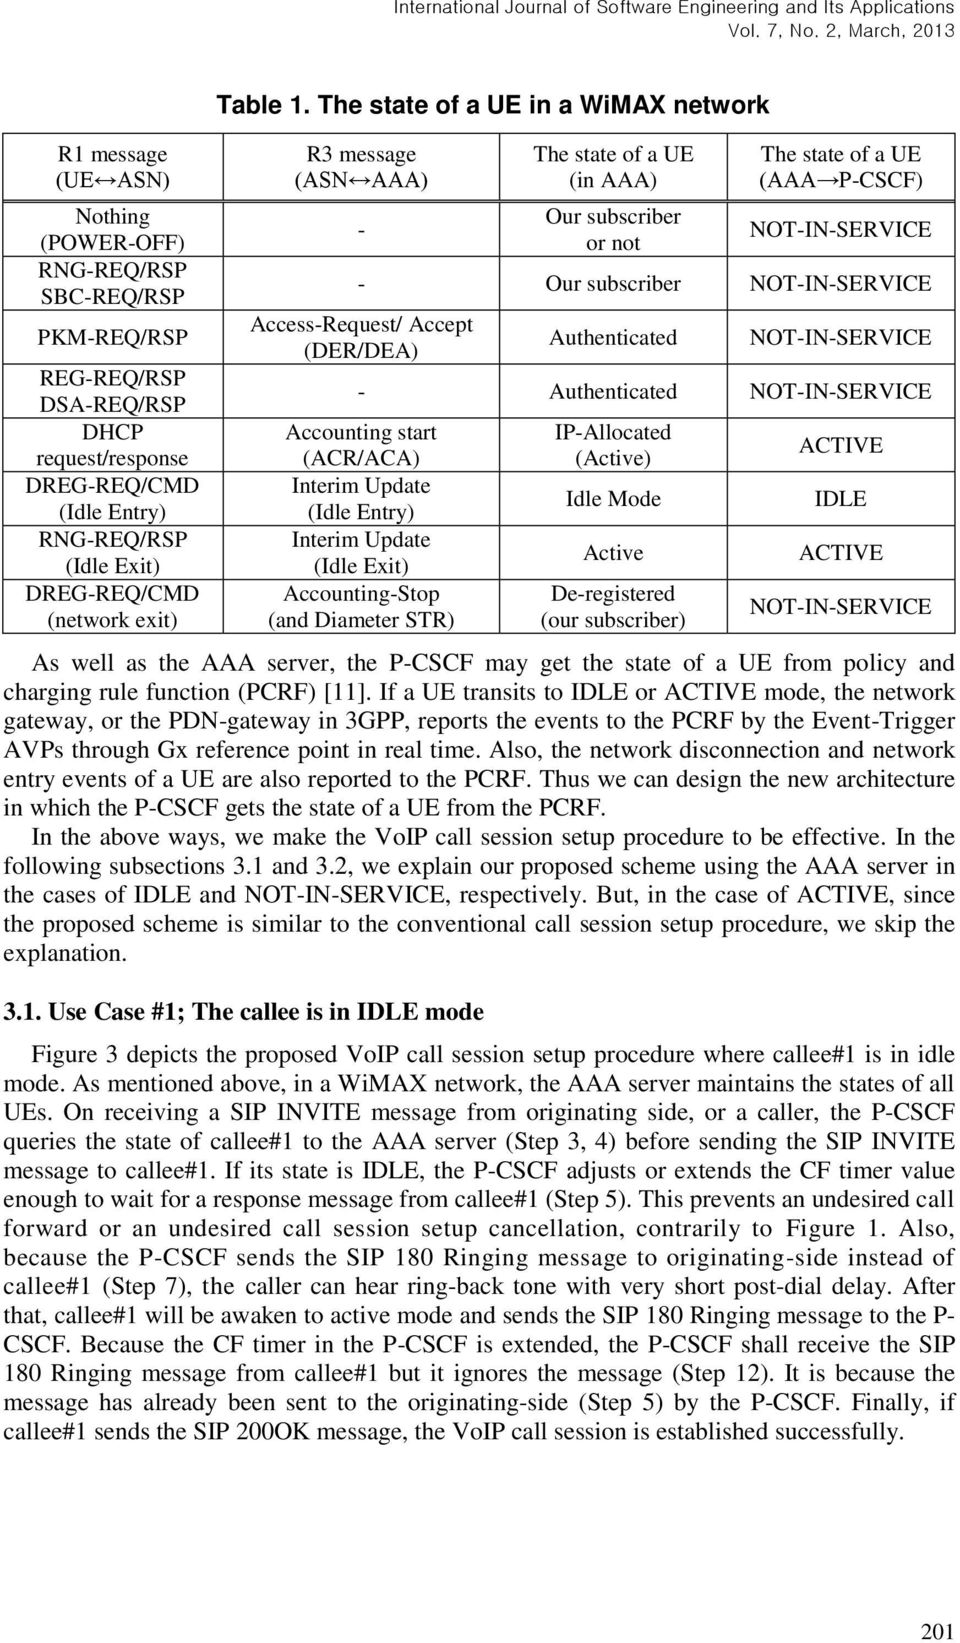 The state of a UE in a WiMAX network R3 message (ASN AAA) - The state of a UE (in AAA) Our subscriber or not The state of a UE (AAA P-CSCF) NOT-IN-SERVICE - Our subscriber NOT-IN-SERVICE